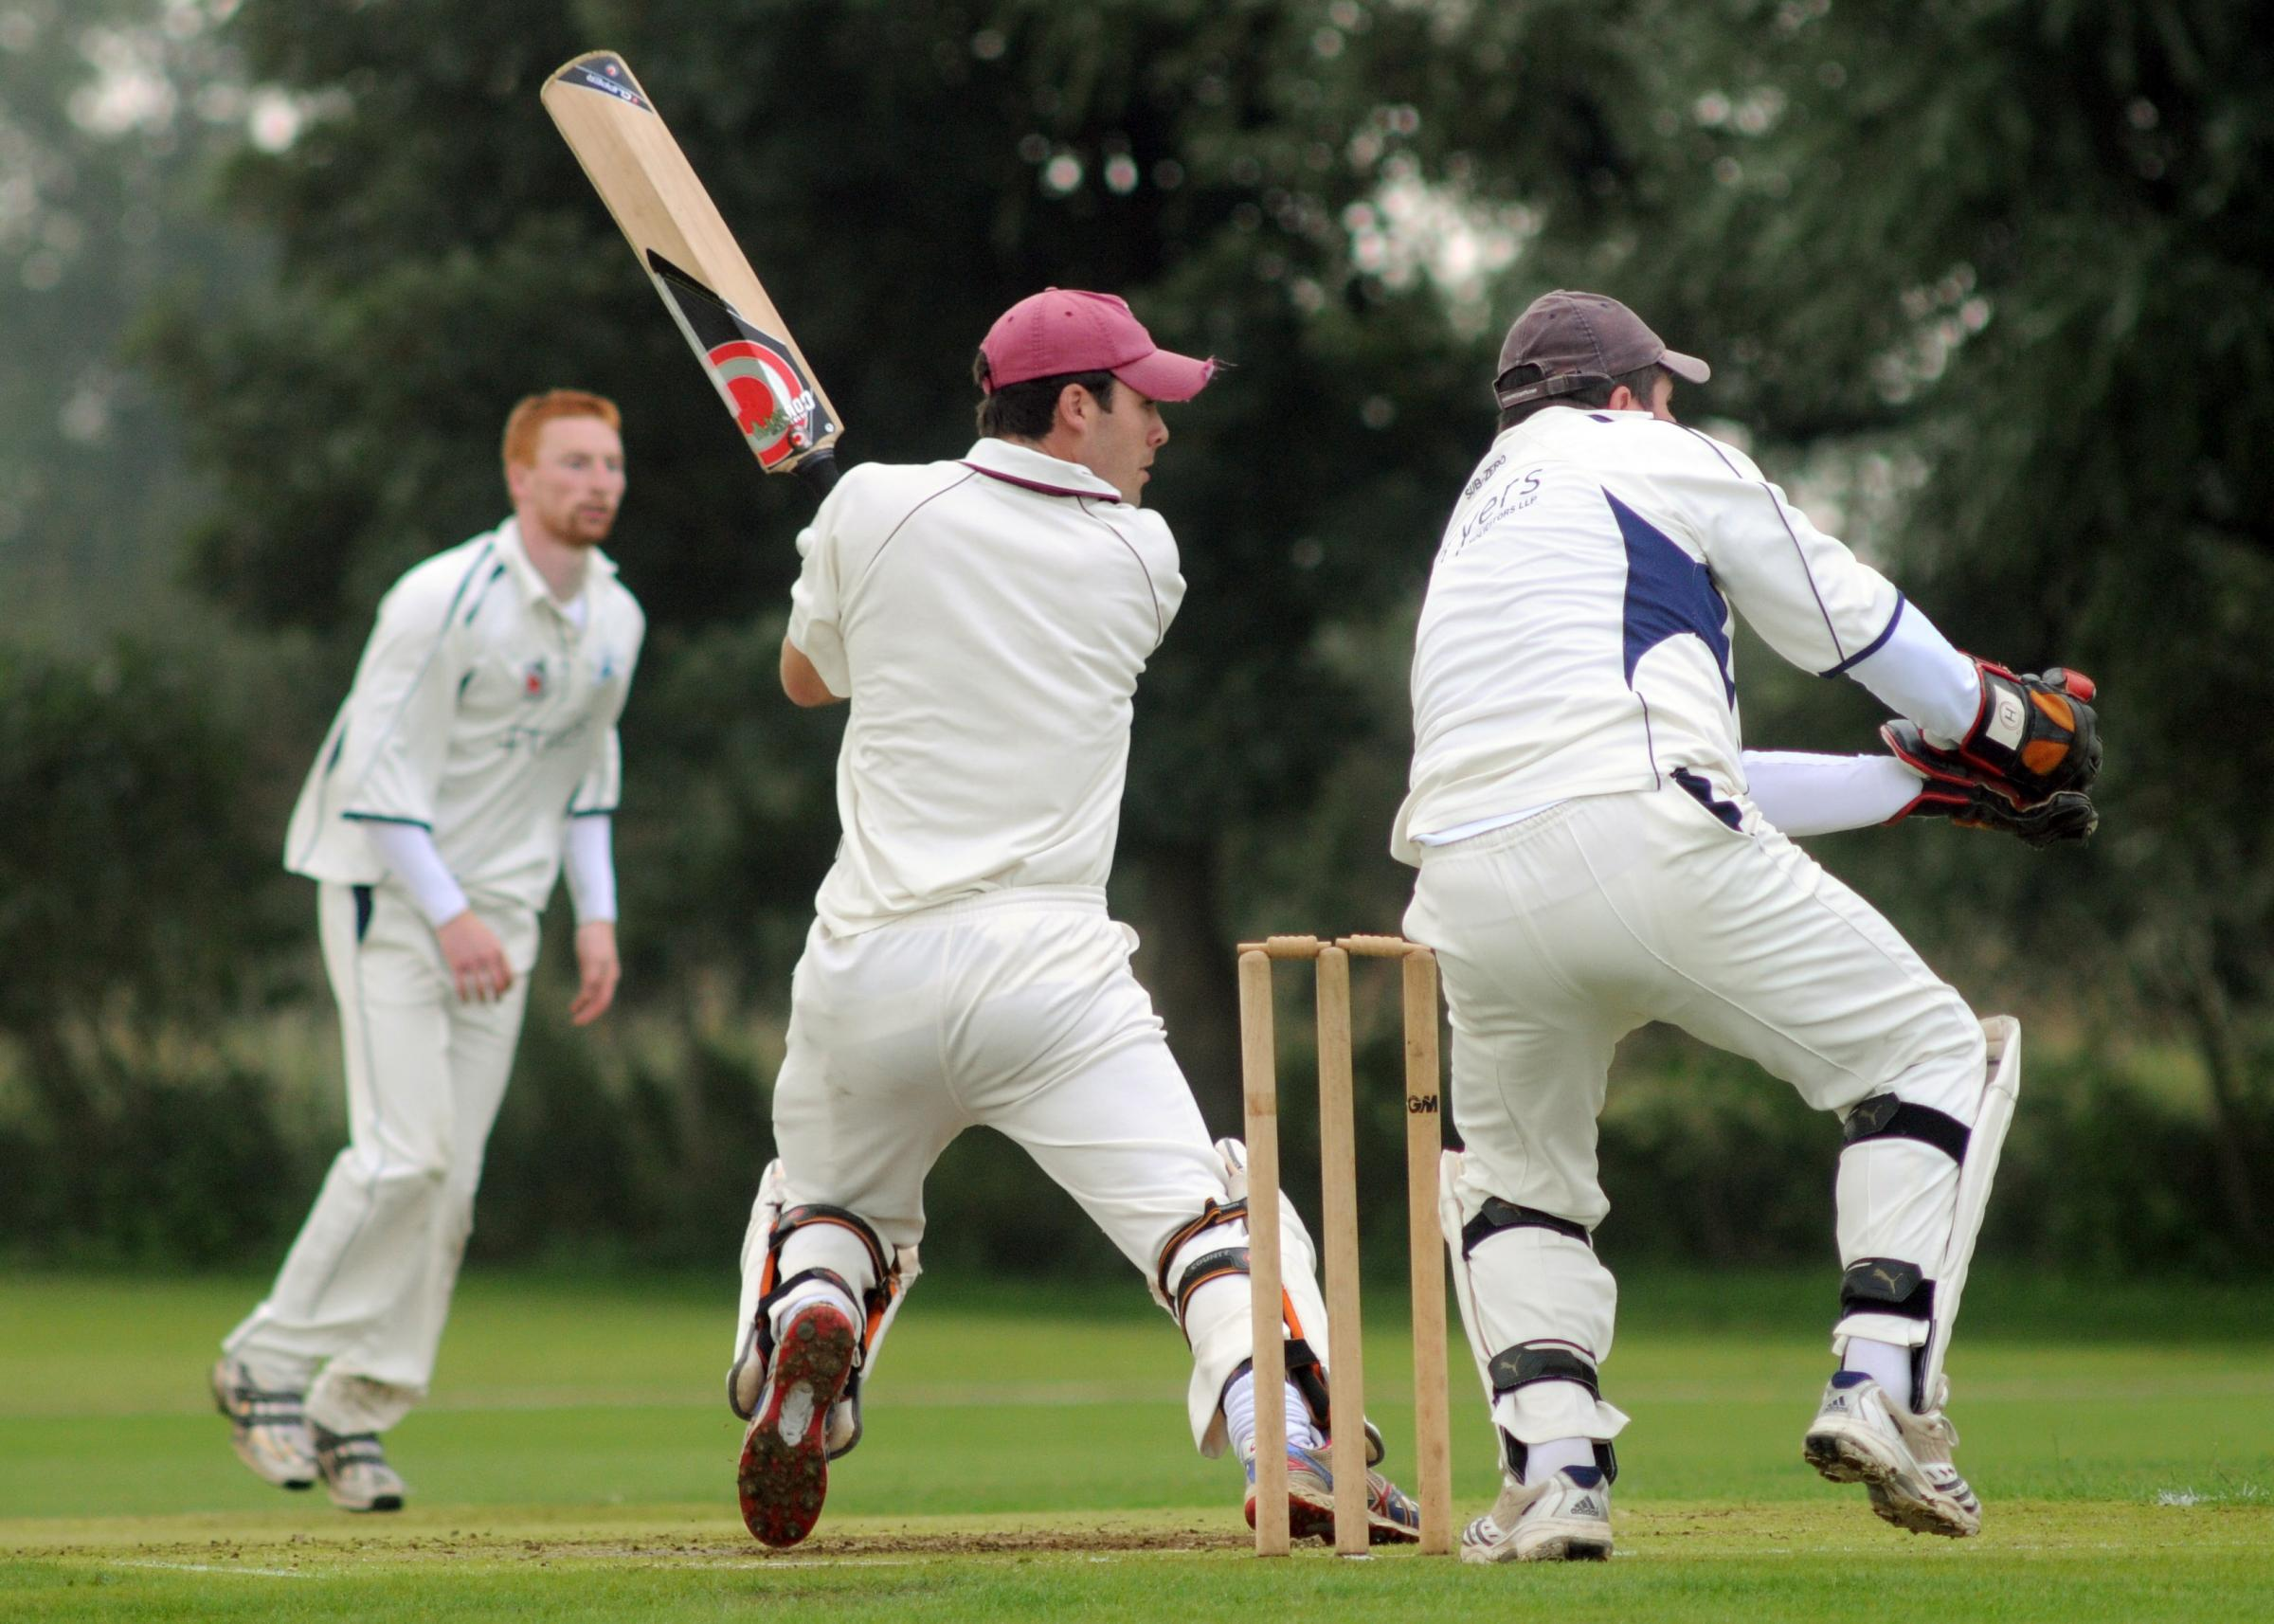 Batsman Adam Fisher, who is likely to be a key figure for Sheriff Hutton Bridge this year